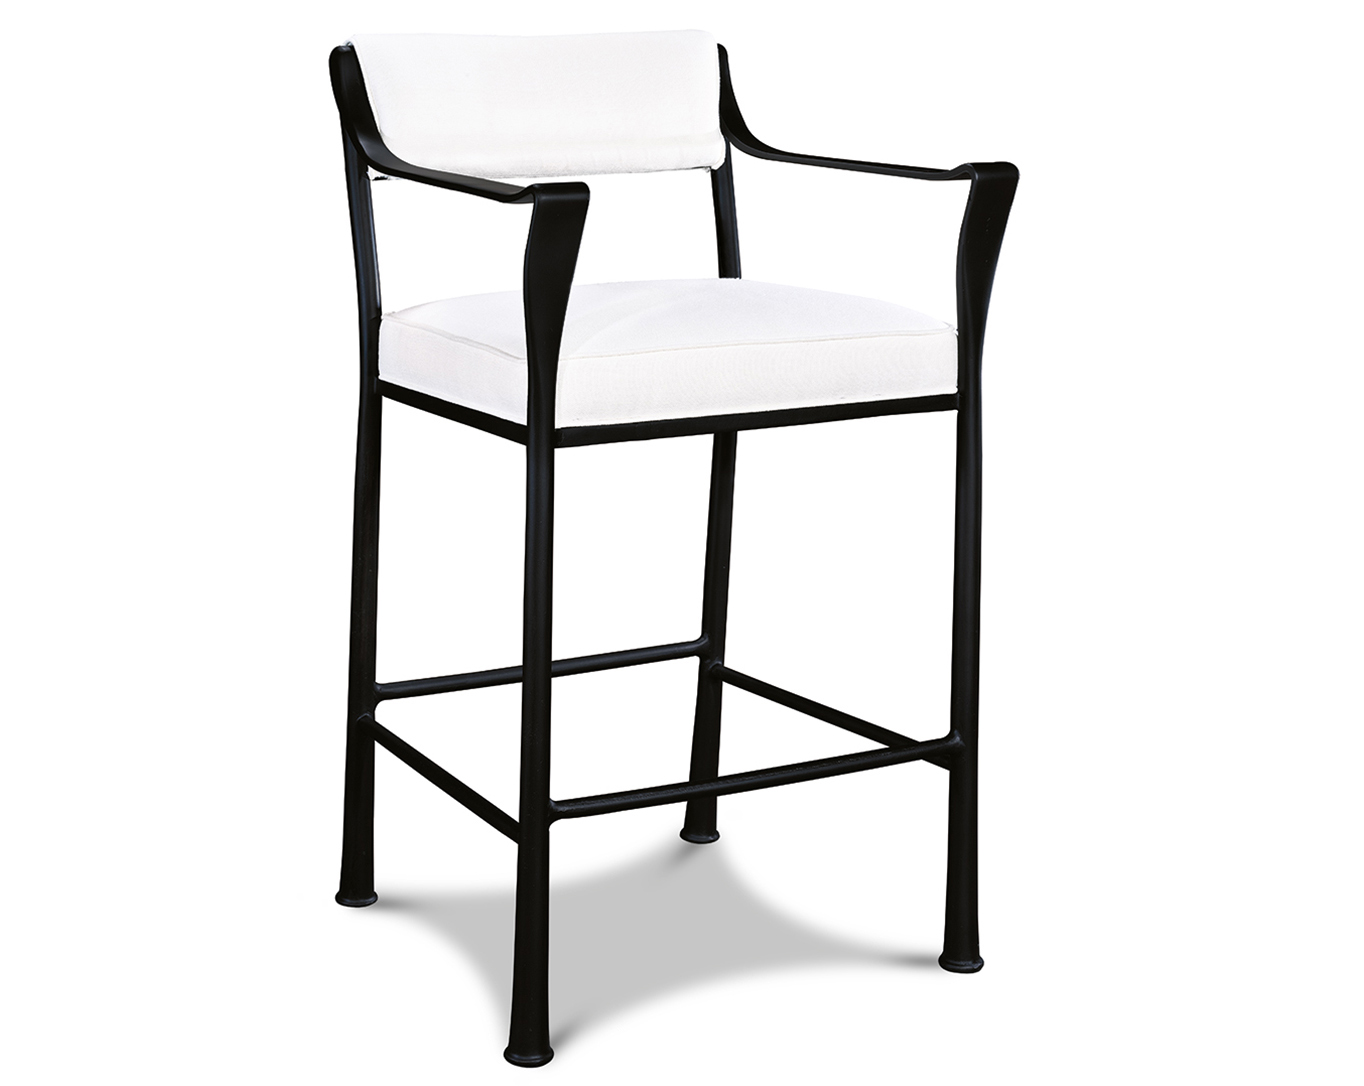 RODEZ II BAR STOOL